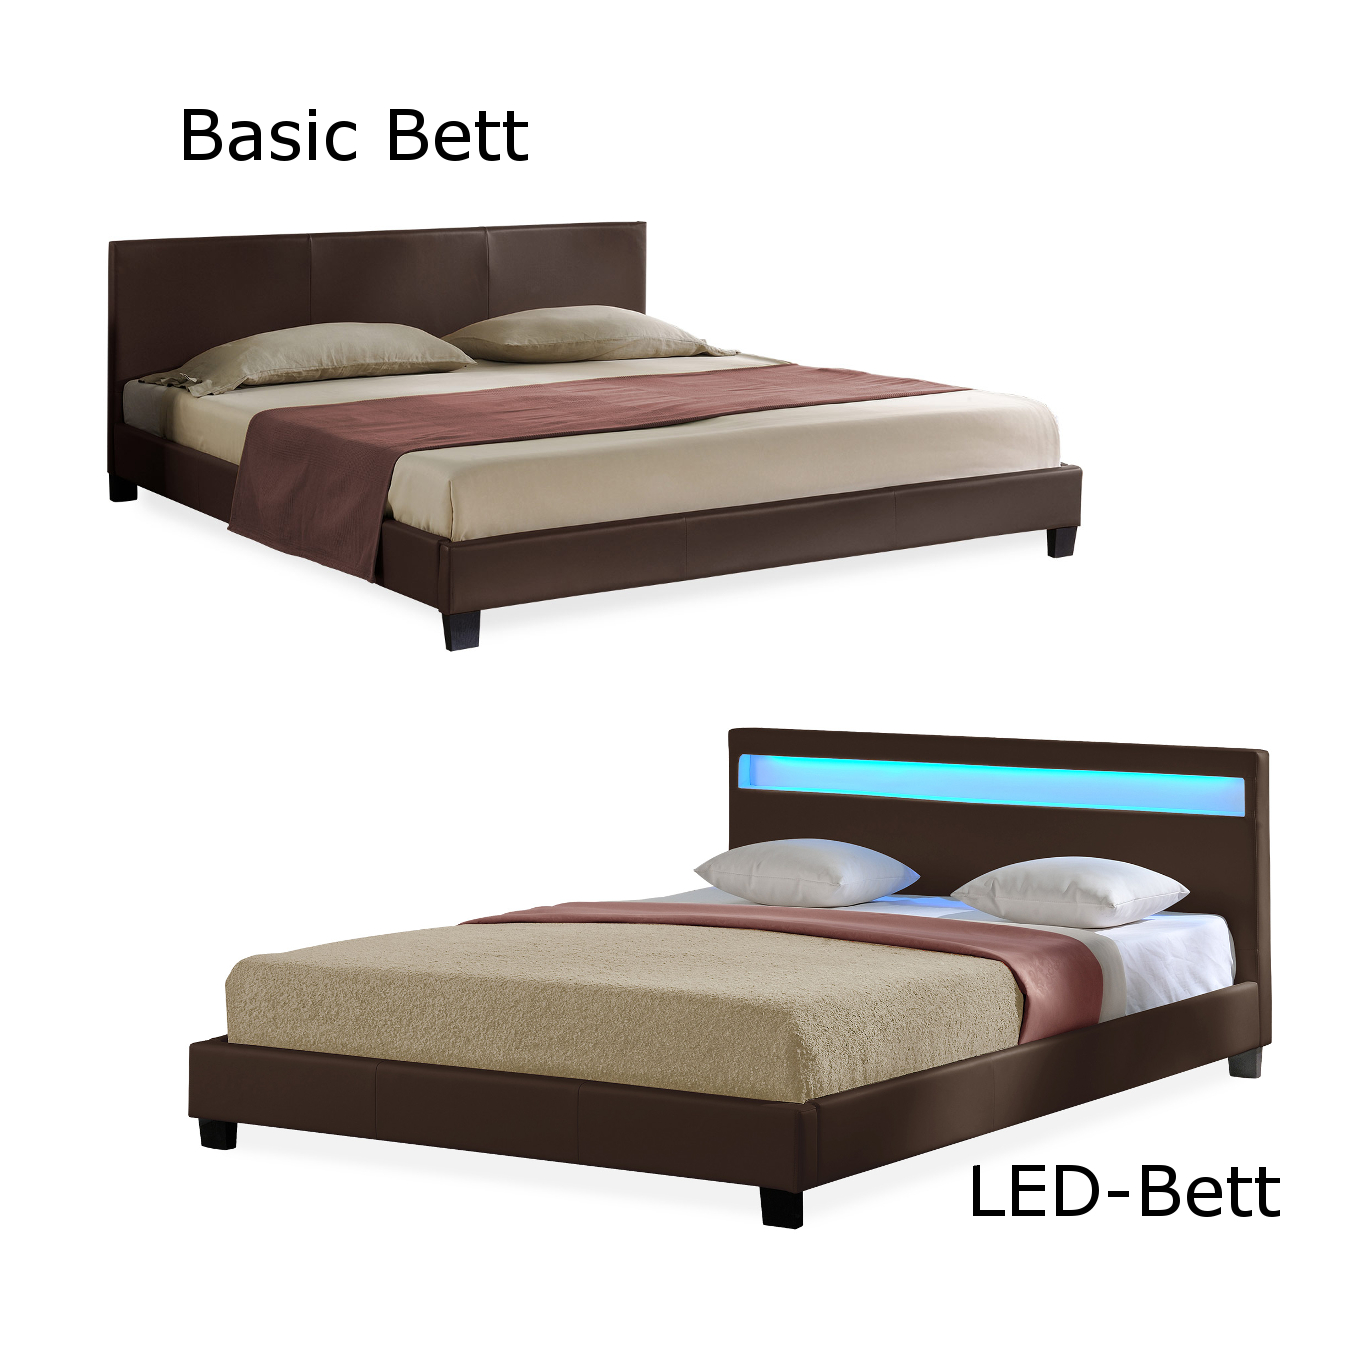 corium led polsterbett 140 160 180 x 200cm kunst leder doppel bett mit matratze ebay. Black Bedroom Furniture Sets. Home Design Ideas